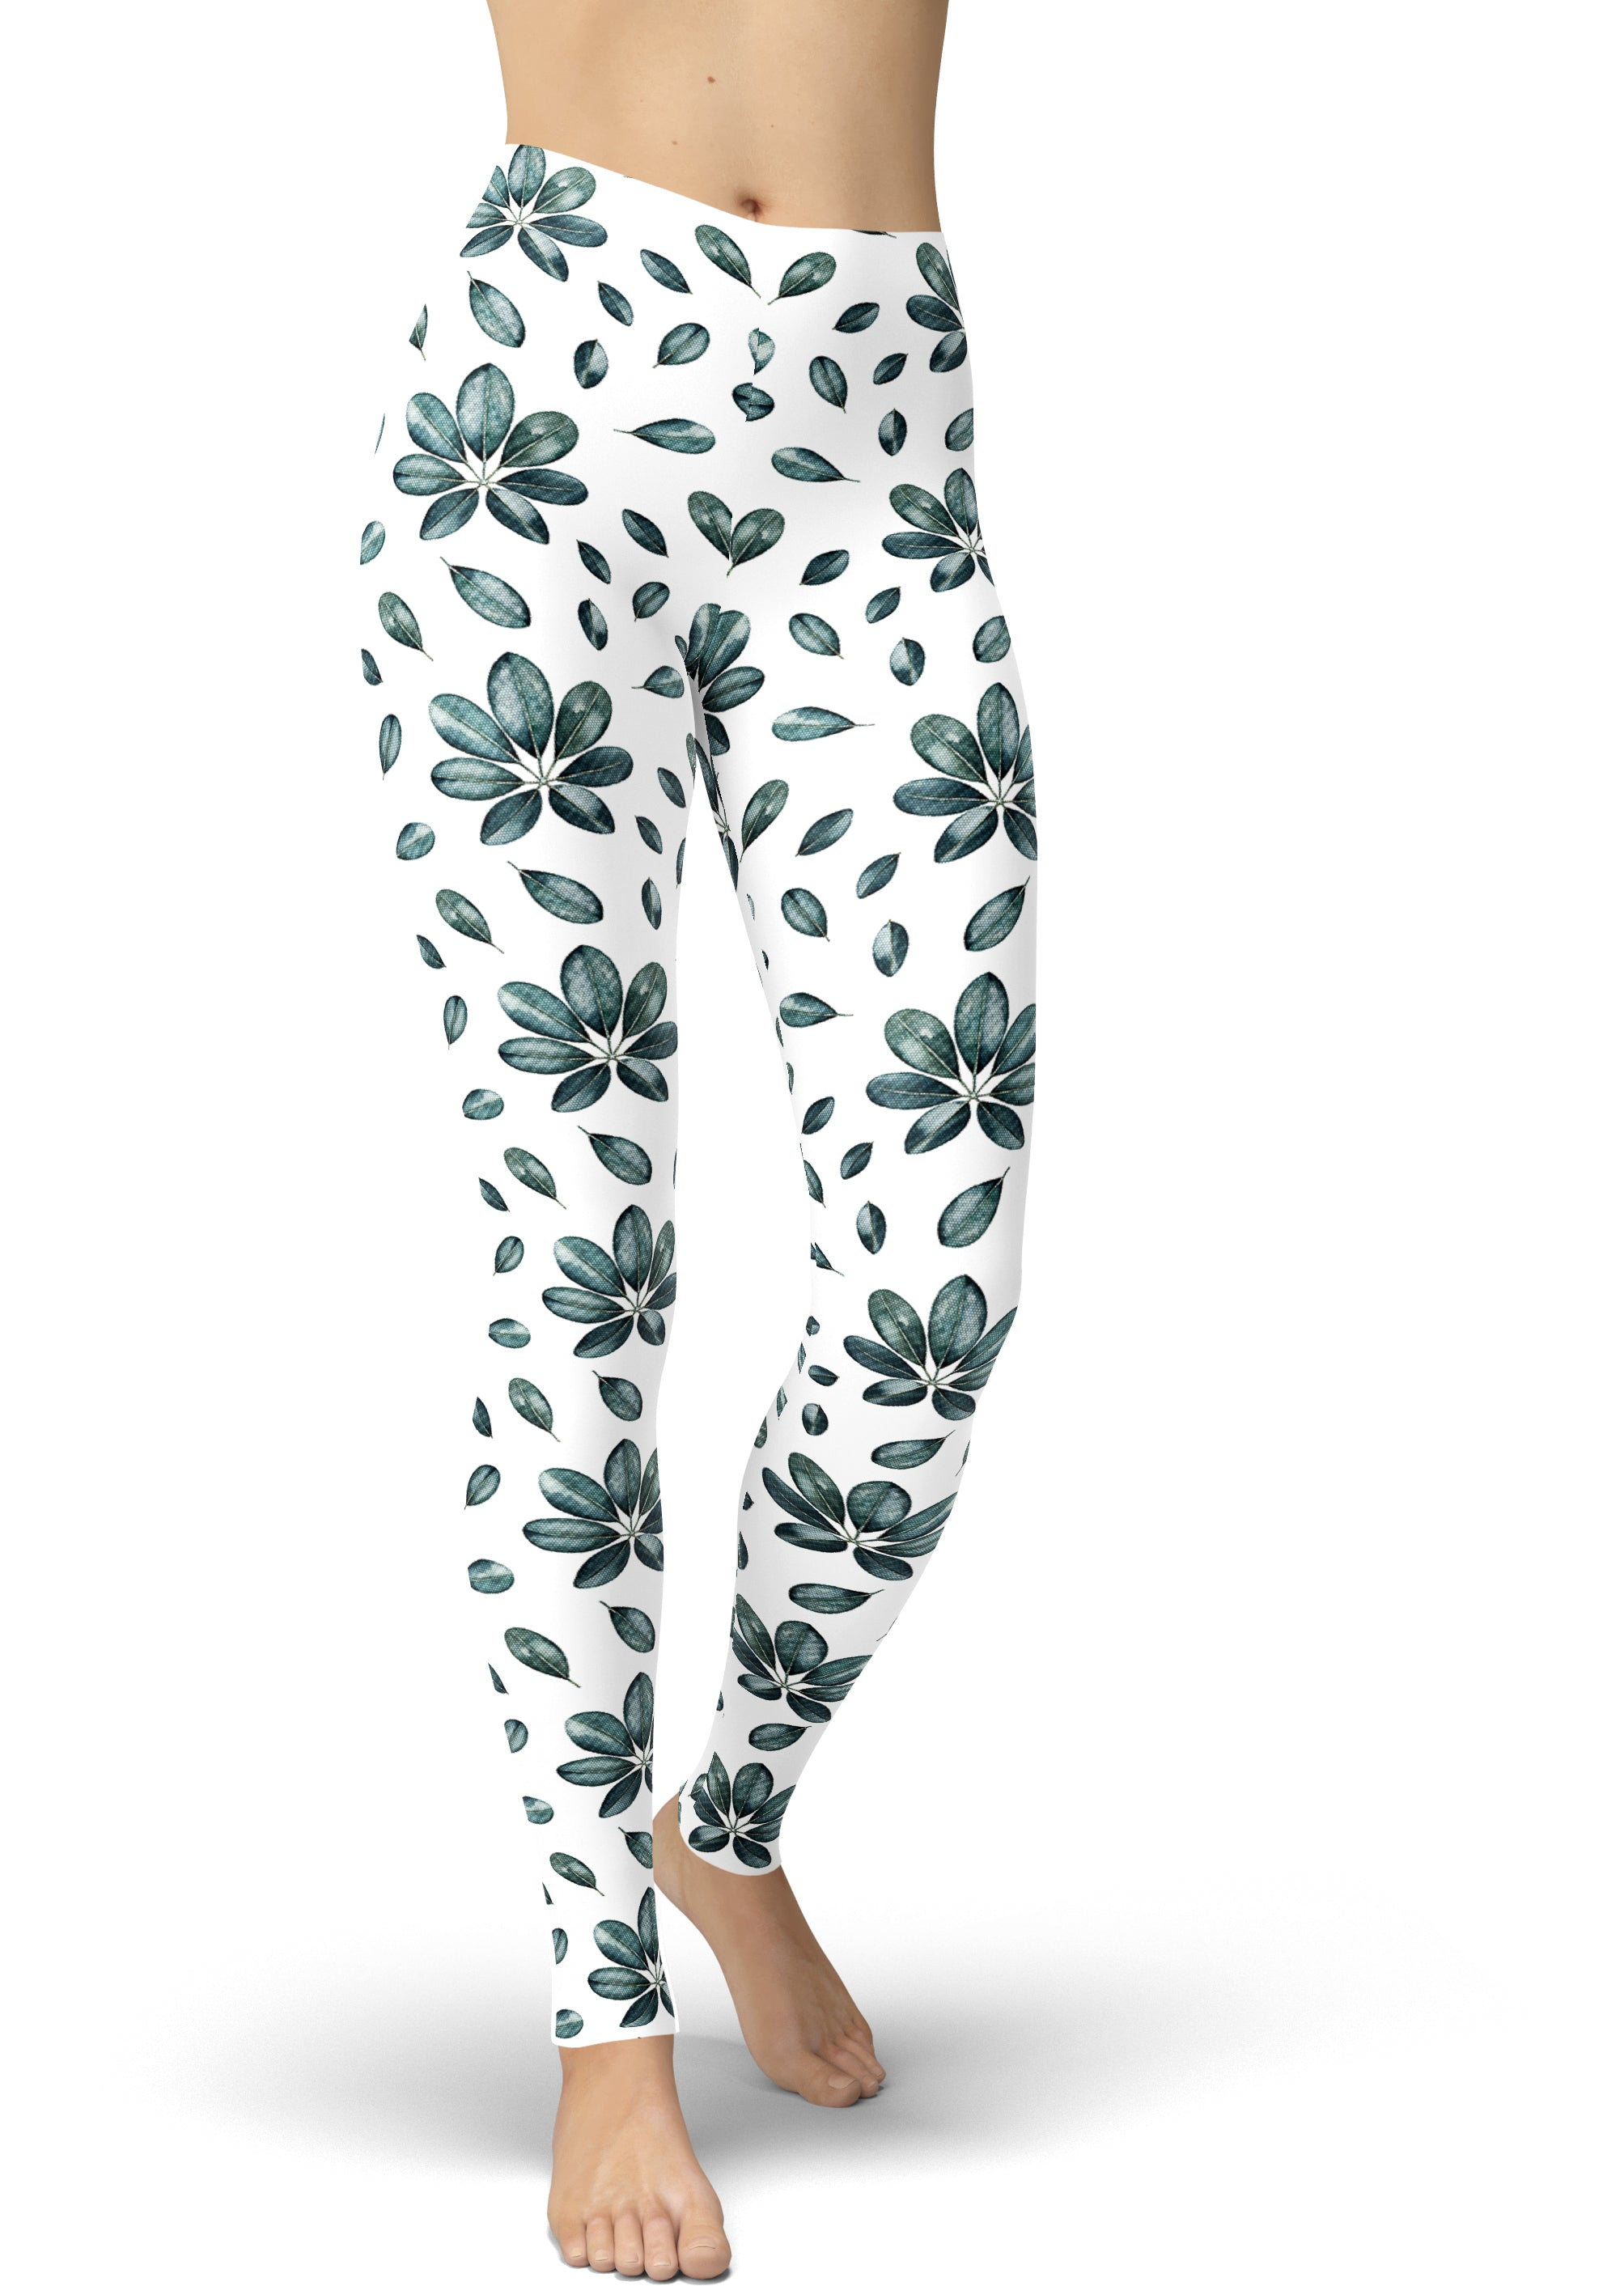 Milk & Leaves Leggings